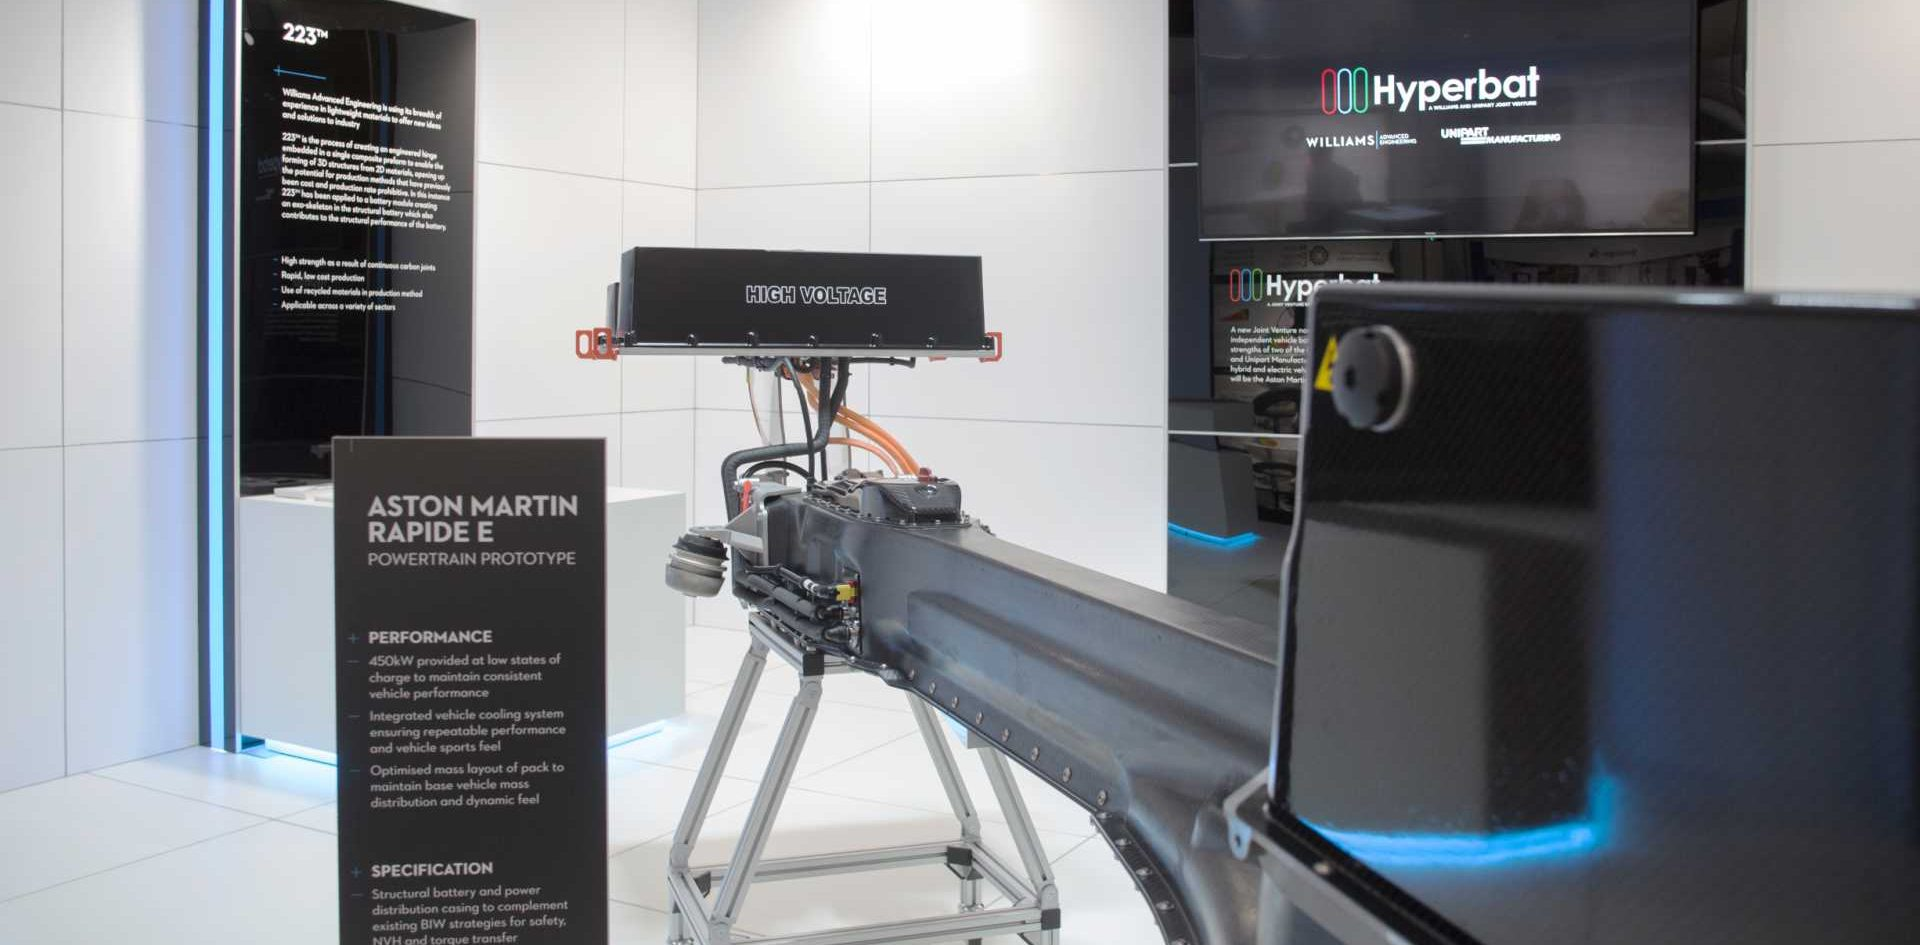 The Hyperbat facility in Coventry has the capability to manufacture batteries for high-performance vehicles to exacting safety standards.